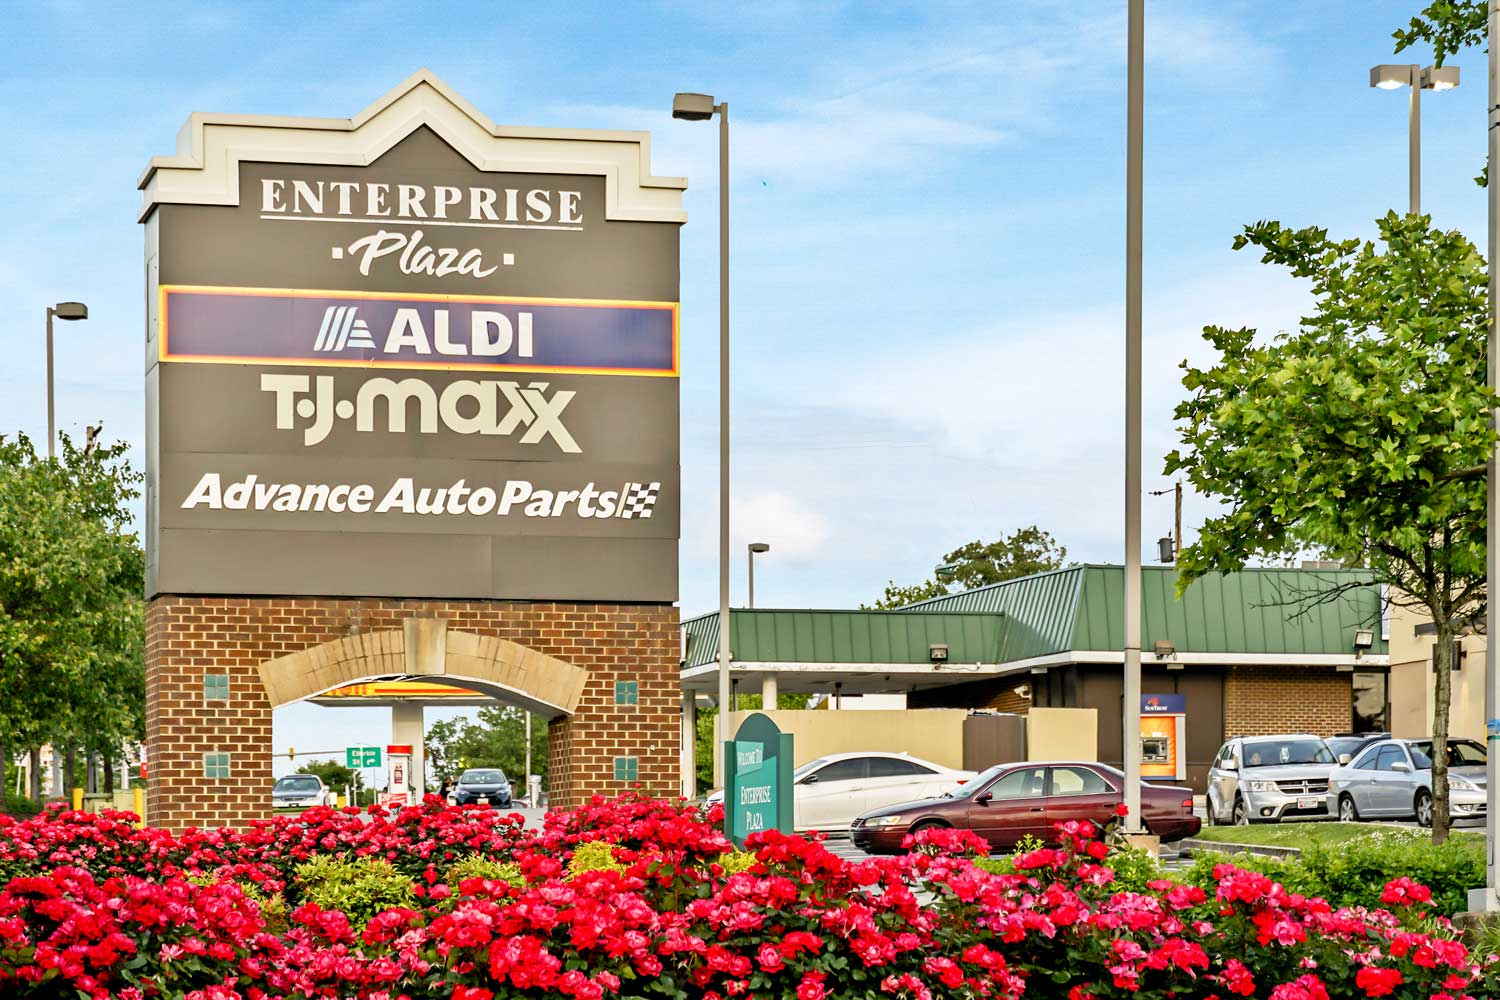 Enterprise Plaza is 5 minutes from Carrollon Manor Apartments in New Carrollton, MD